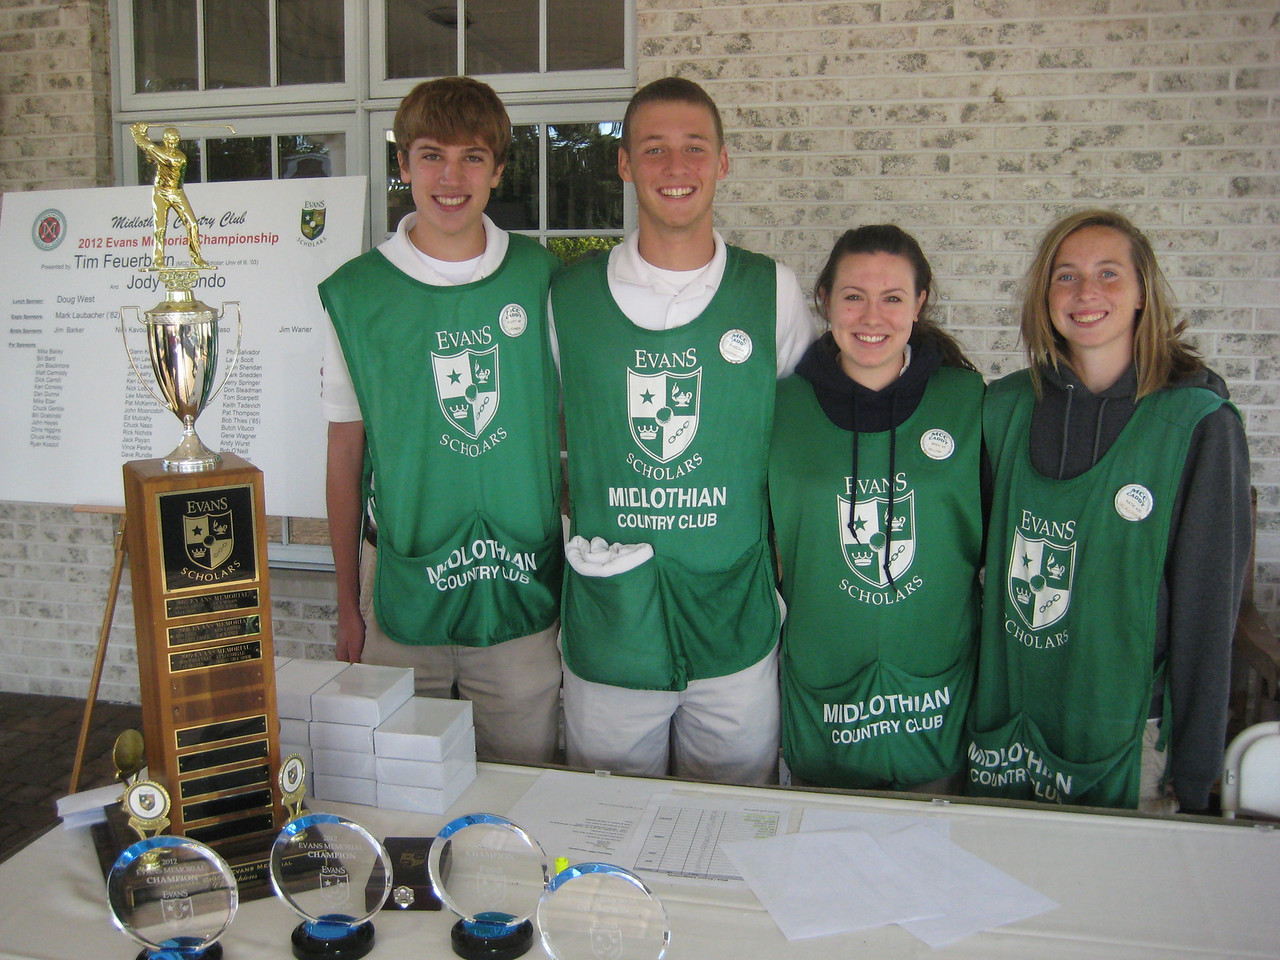 Aug. 11, 2012<br /> Midlothian Country Club Evans Scholars Day<br /> Midlothian Country Club, Midlothian, Ill.